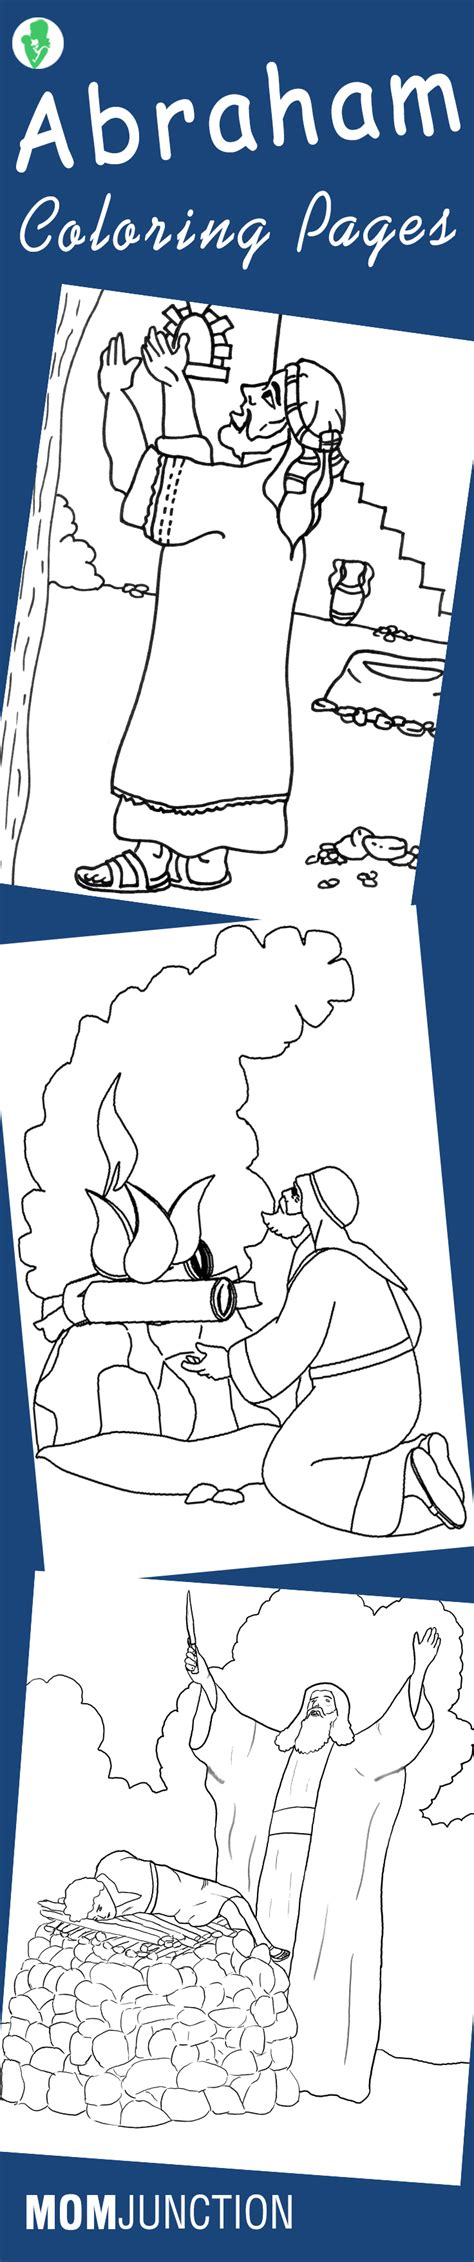 abraham covenant coloring page top 10 free printable abraham coloring pages online